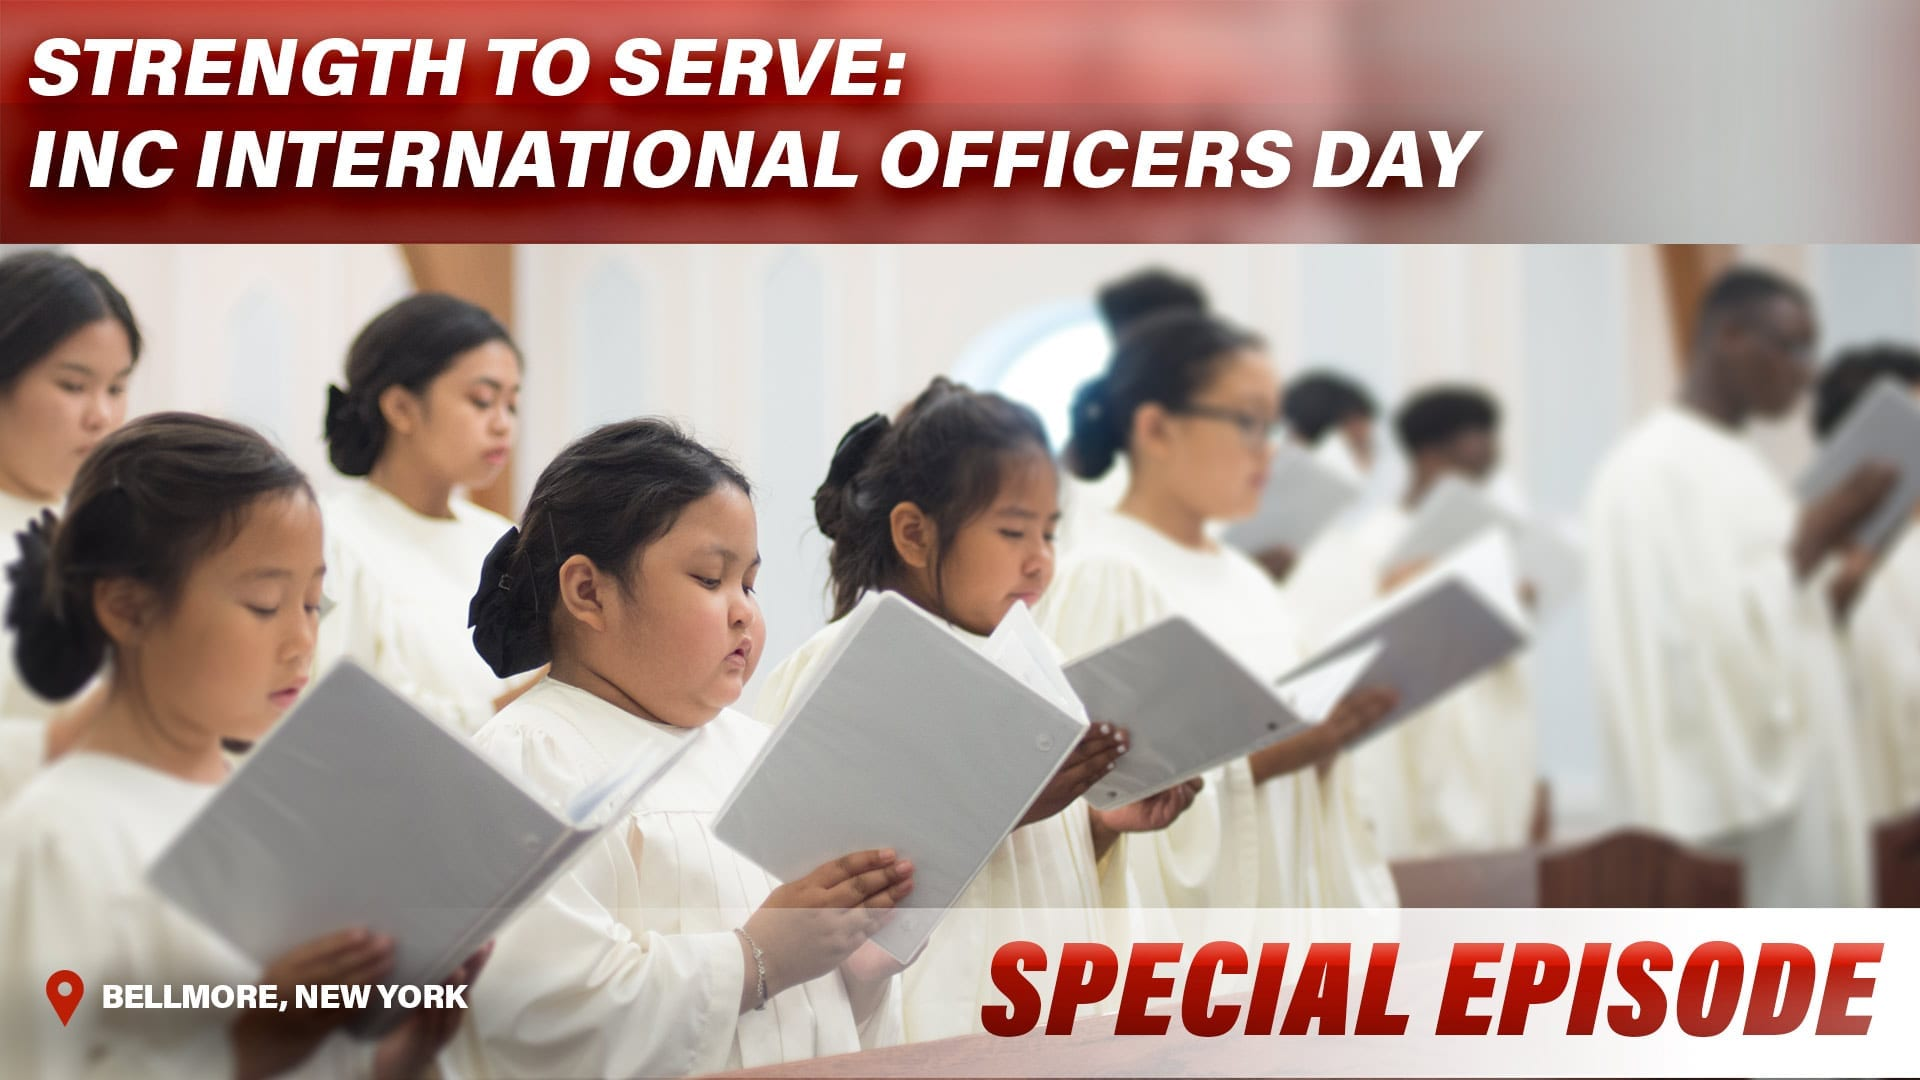 Strength To Serve: INC International Officers Day